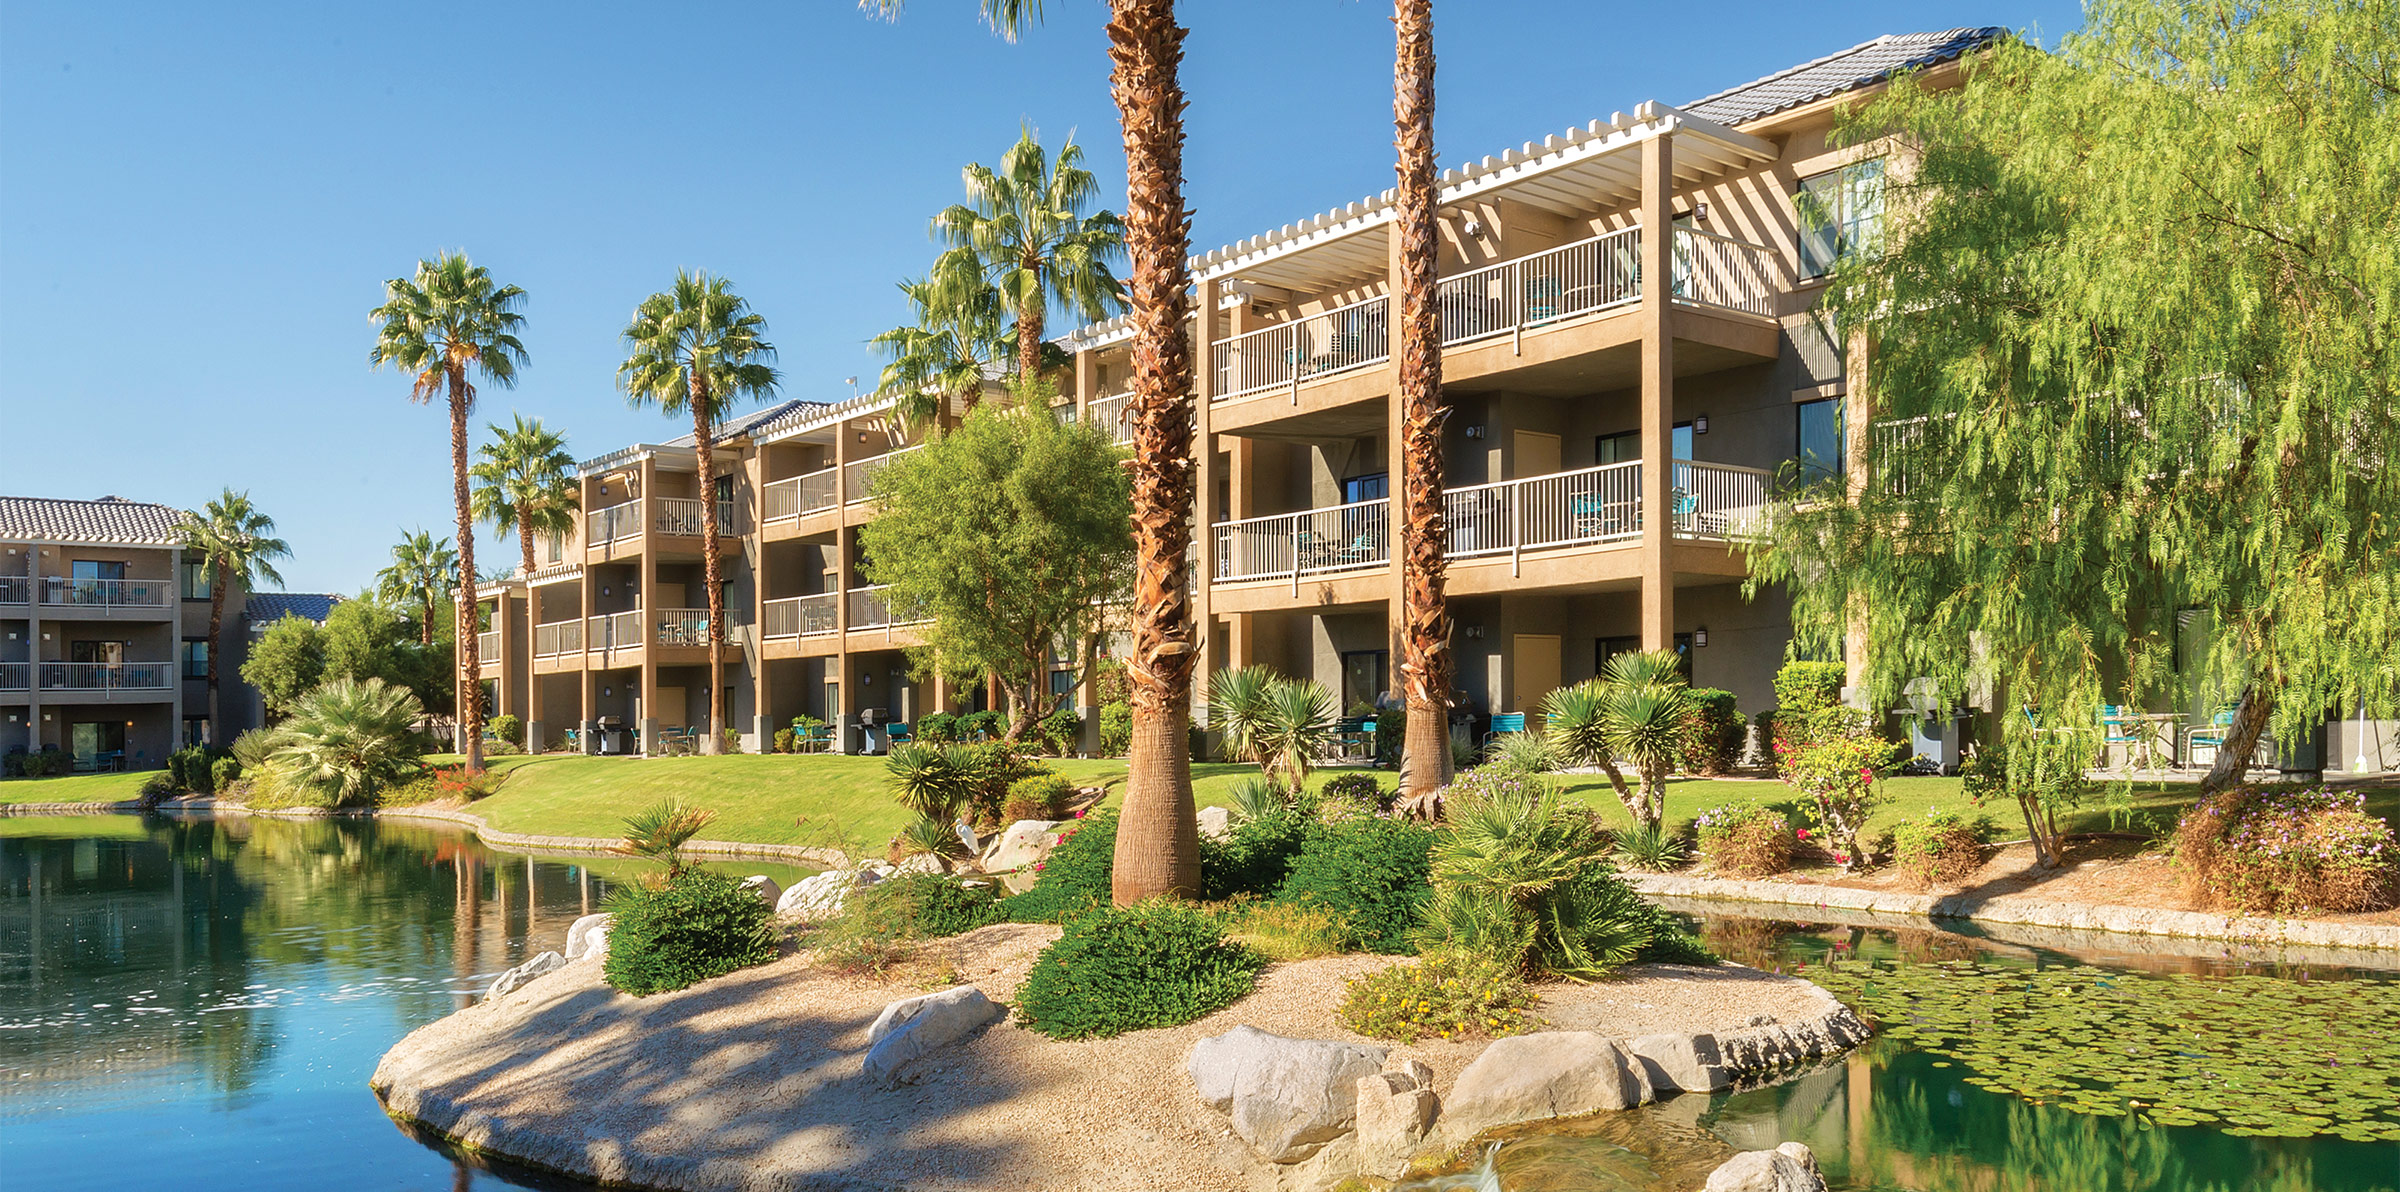 Apartment 1 Bedroom 1 Bath In Indio  CA   Palm Springs  5 miles from COACHELLA photo 18634801